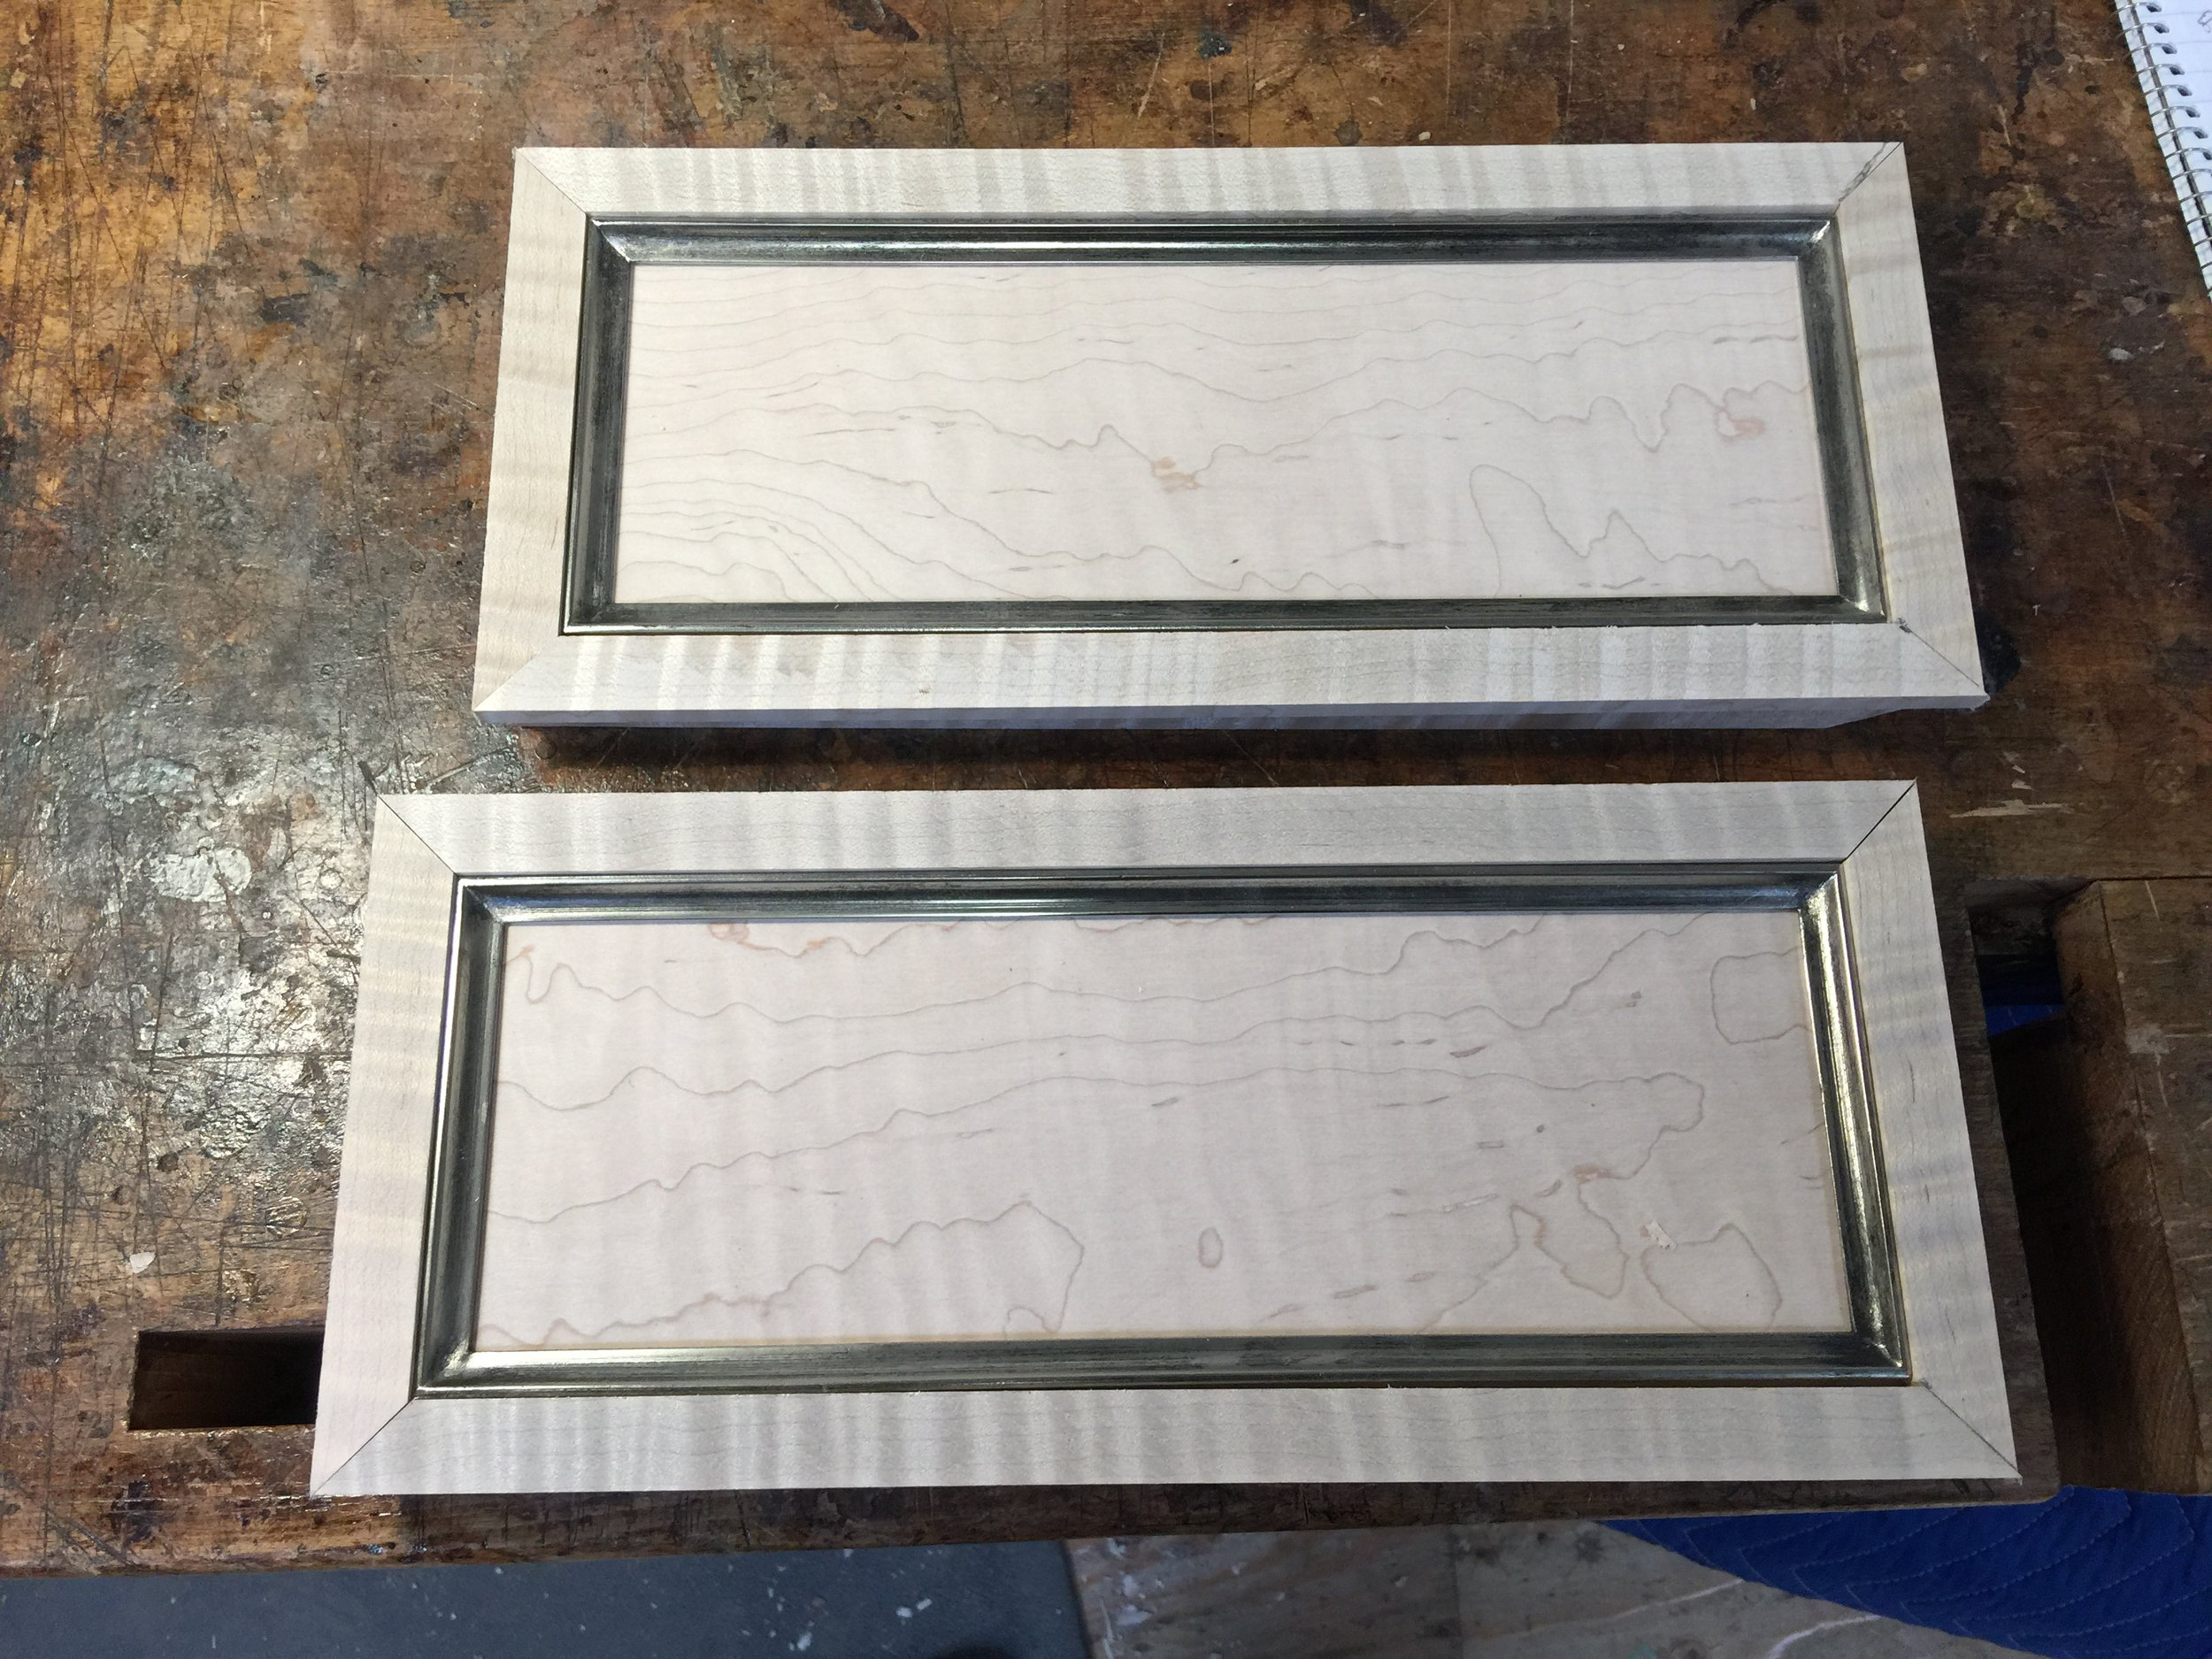 Dry fitting the wooden and metal frames for the drawer fronts.